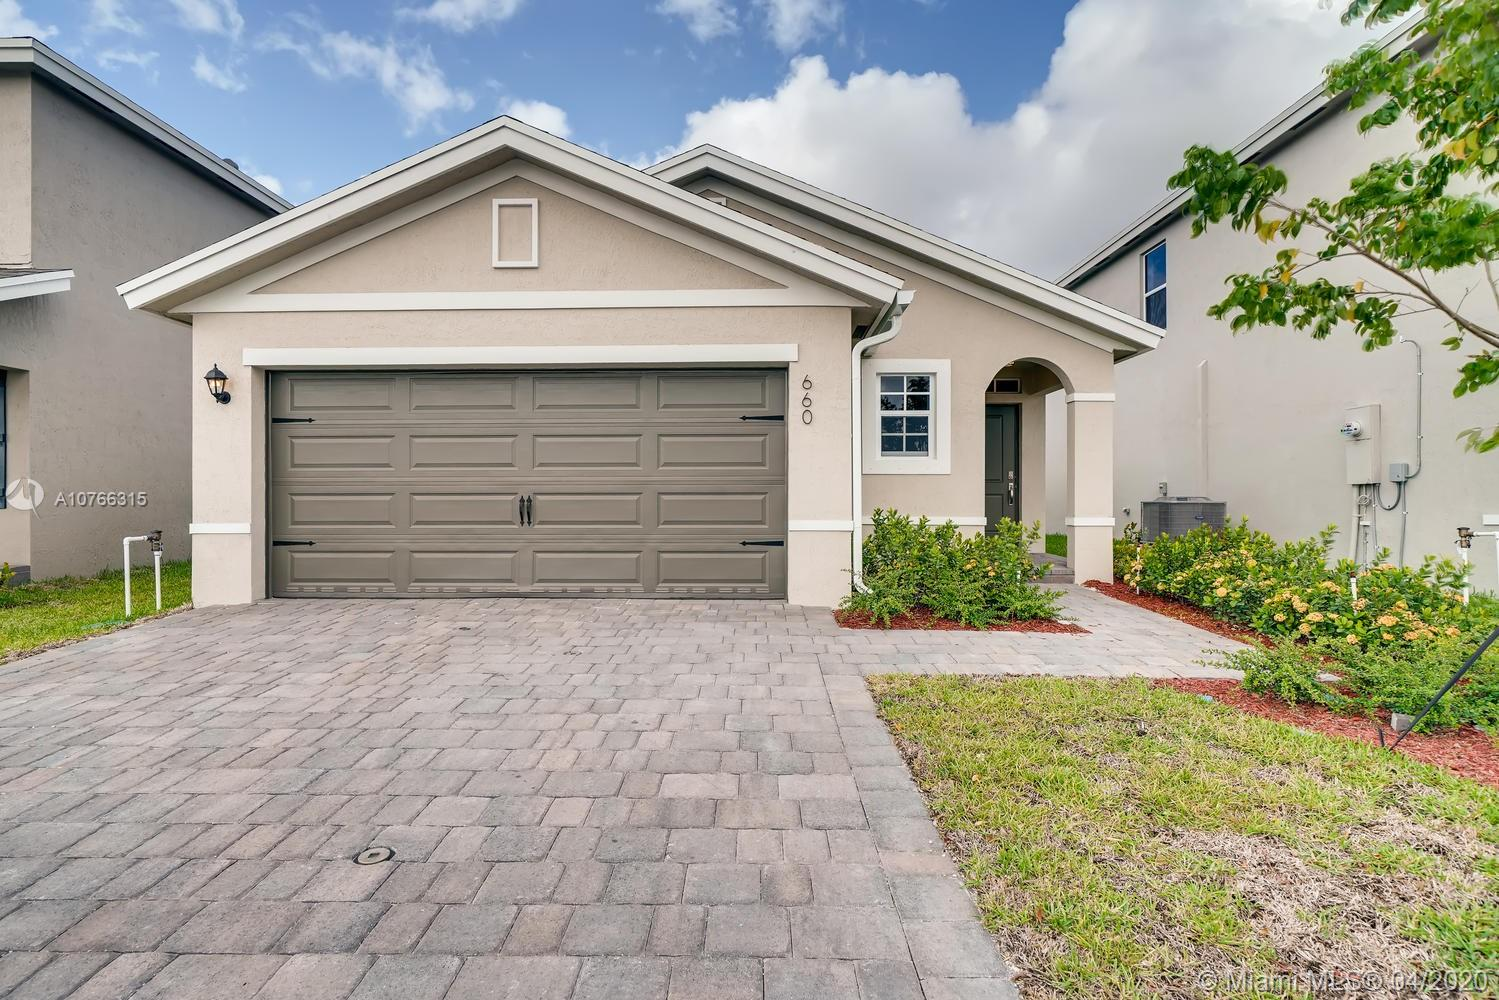 660 NE 5th Way Property Photo - Florida City, FL real estate listing